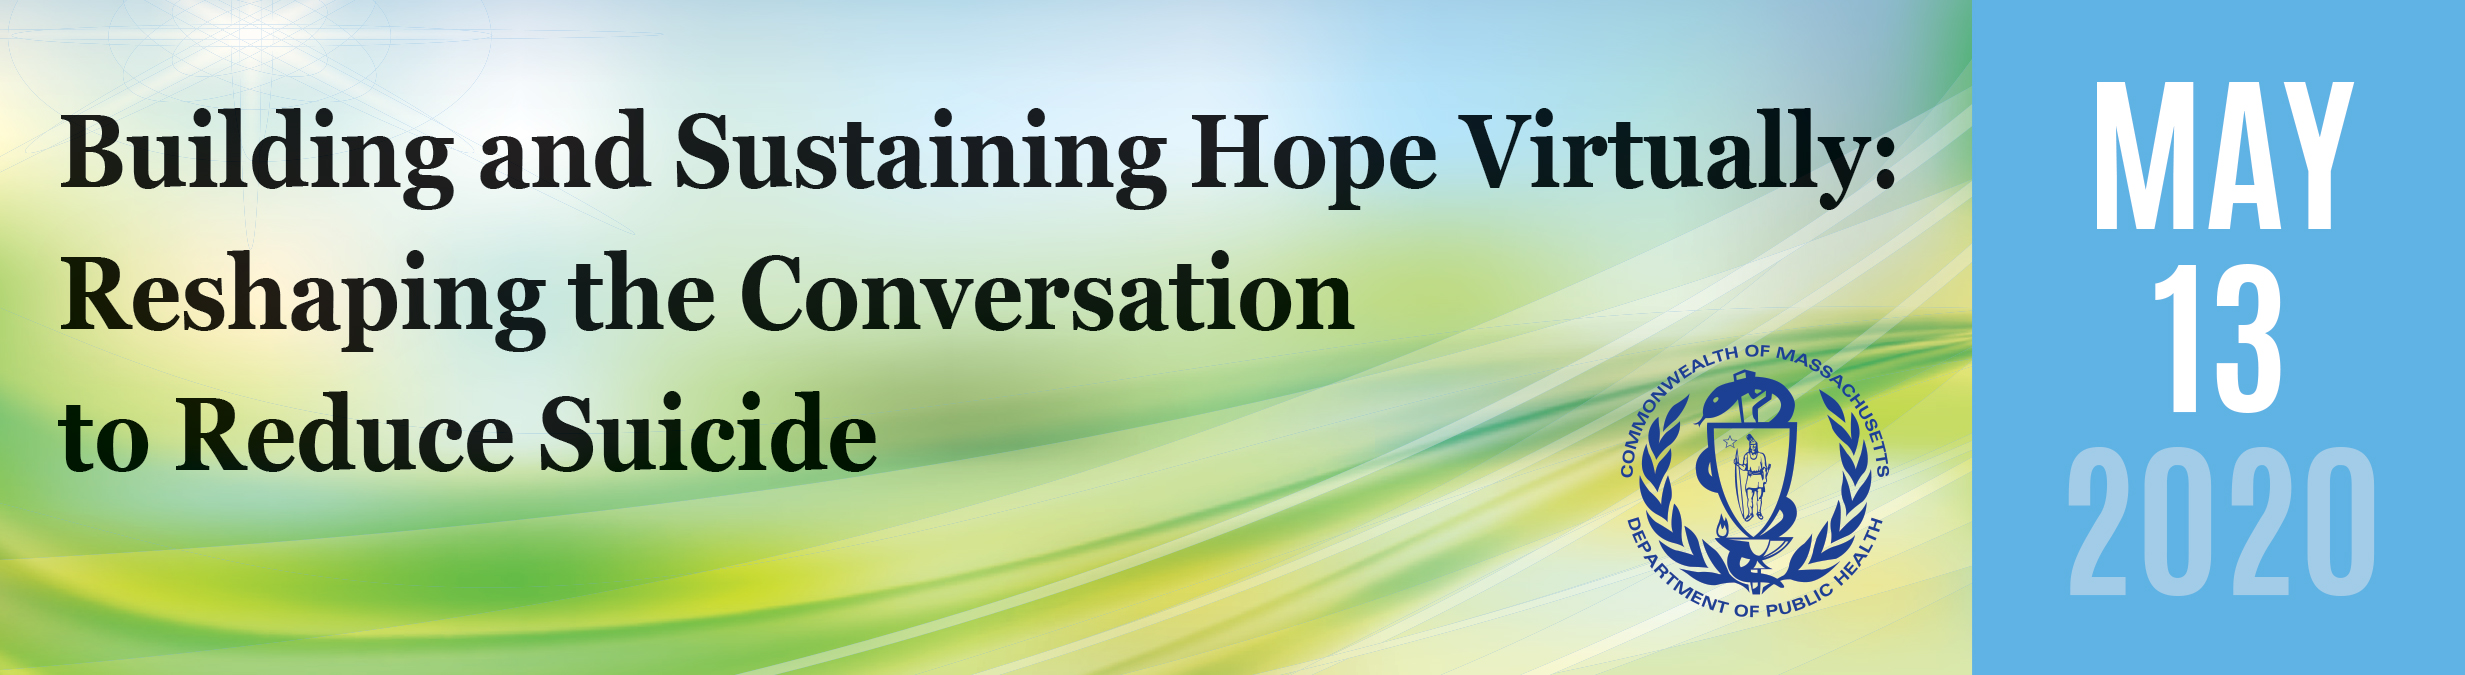 Building and Sustaining Hope Virtually: Reshaping the Conversation to Reduce Suicide